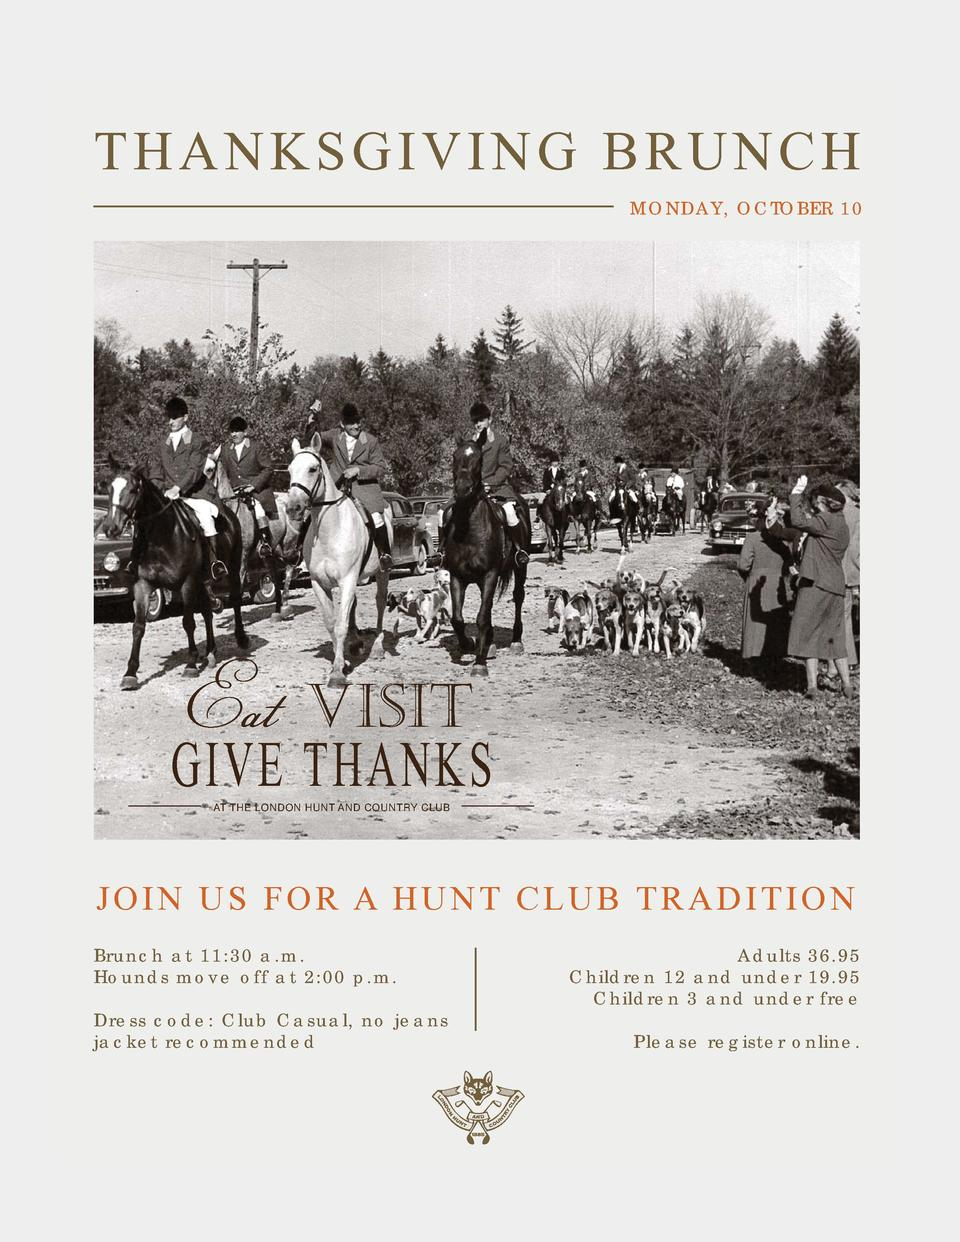 THANKSGIVING BRUNCH MONDAY, OCTOBER 10  Eat 8 5 6  GIVE THANKS AT THE LONDON HUNT AND COUNTRY CLUB  JOIN US FOR A HUNT CLU...